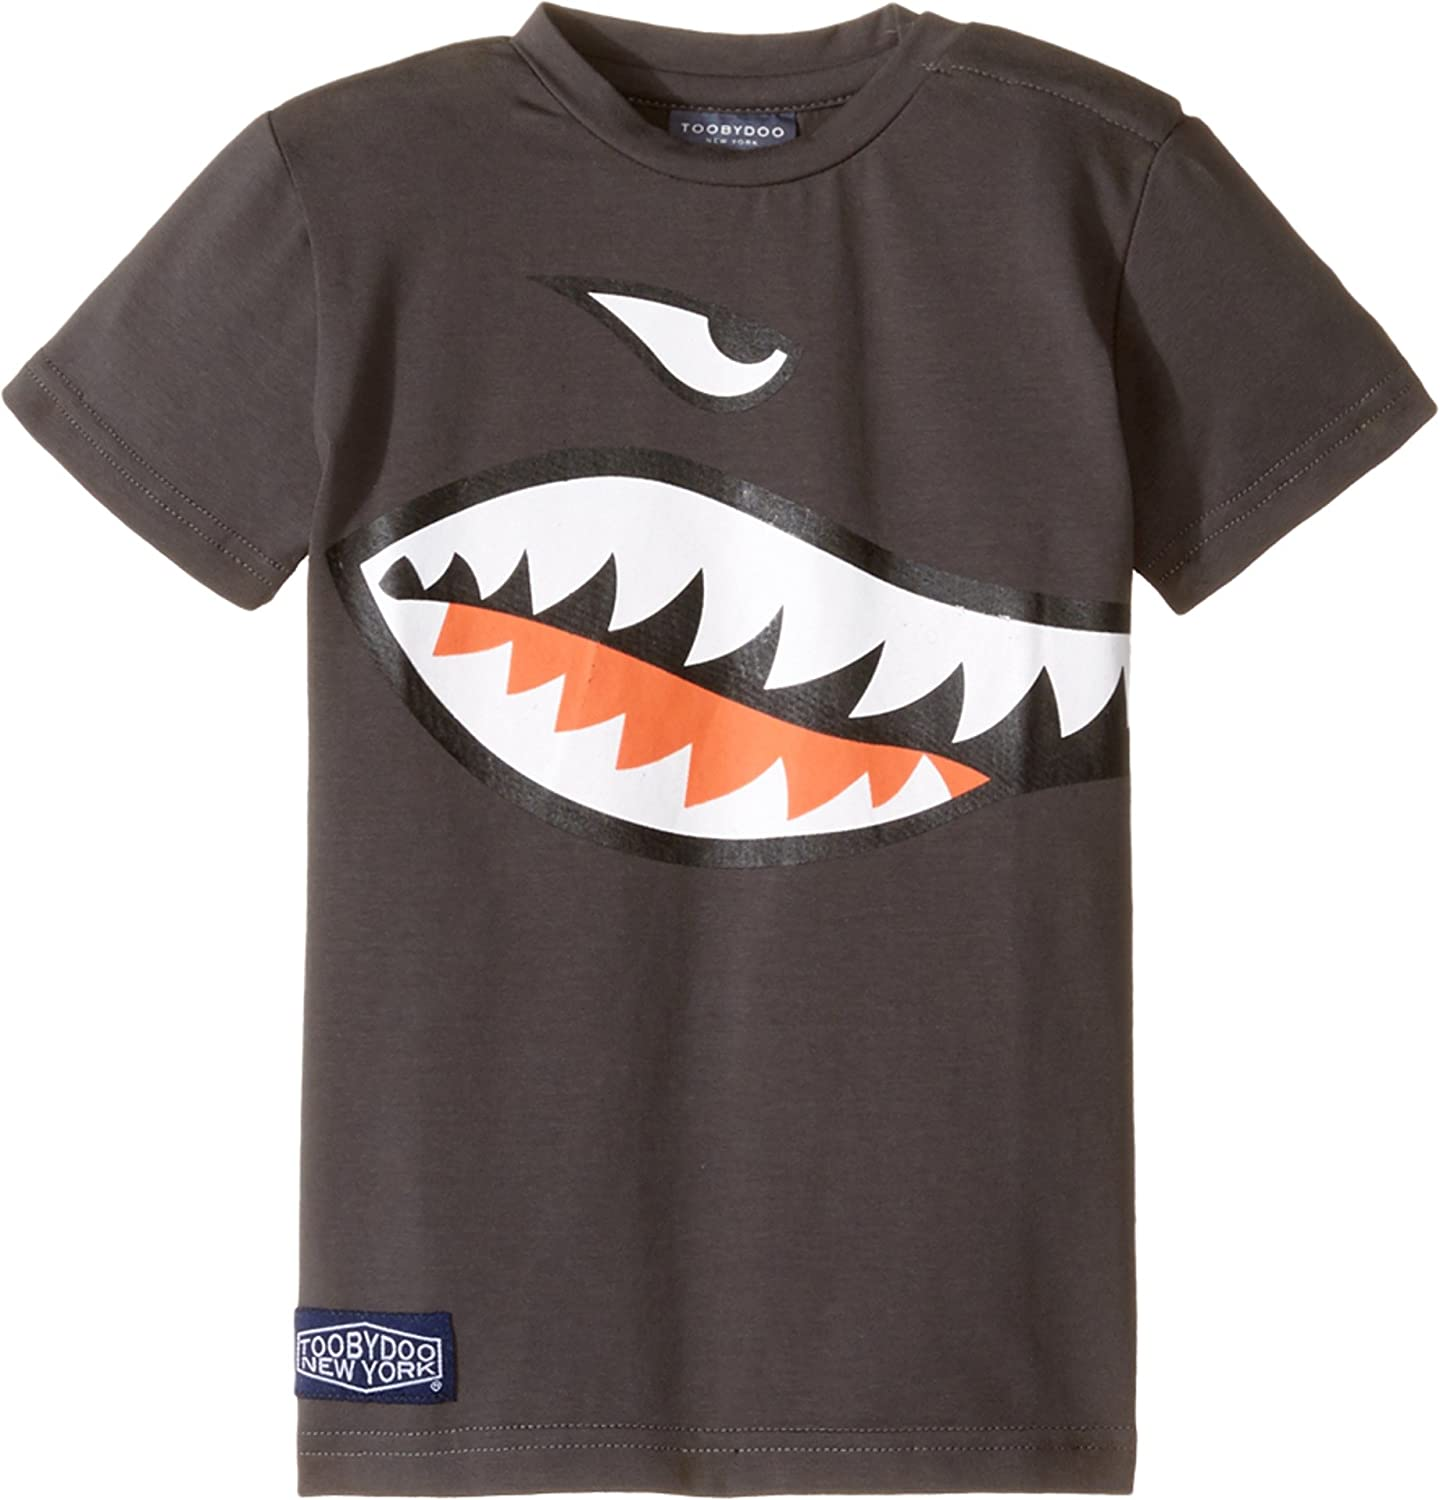 c3315bab Amazon.com: Toobydoo Baby Boy's Shark Mouth T-Shirt (Infant/Toddler/Little  Kids/Big Kids) Grey/Navy/White/Red T-Shirt: Clothing